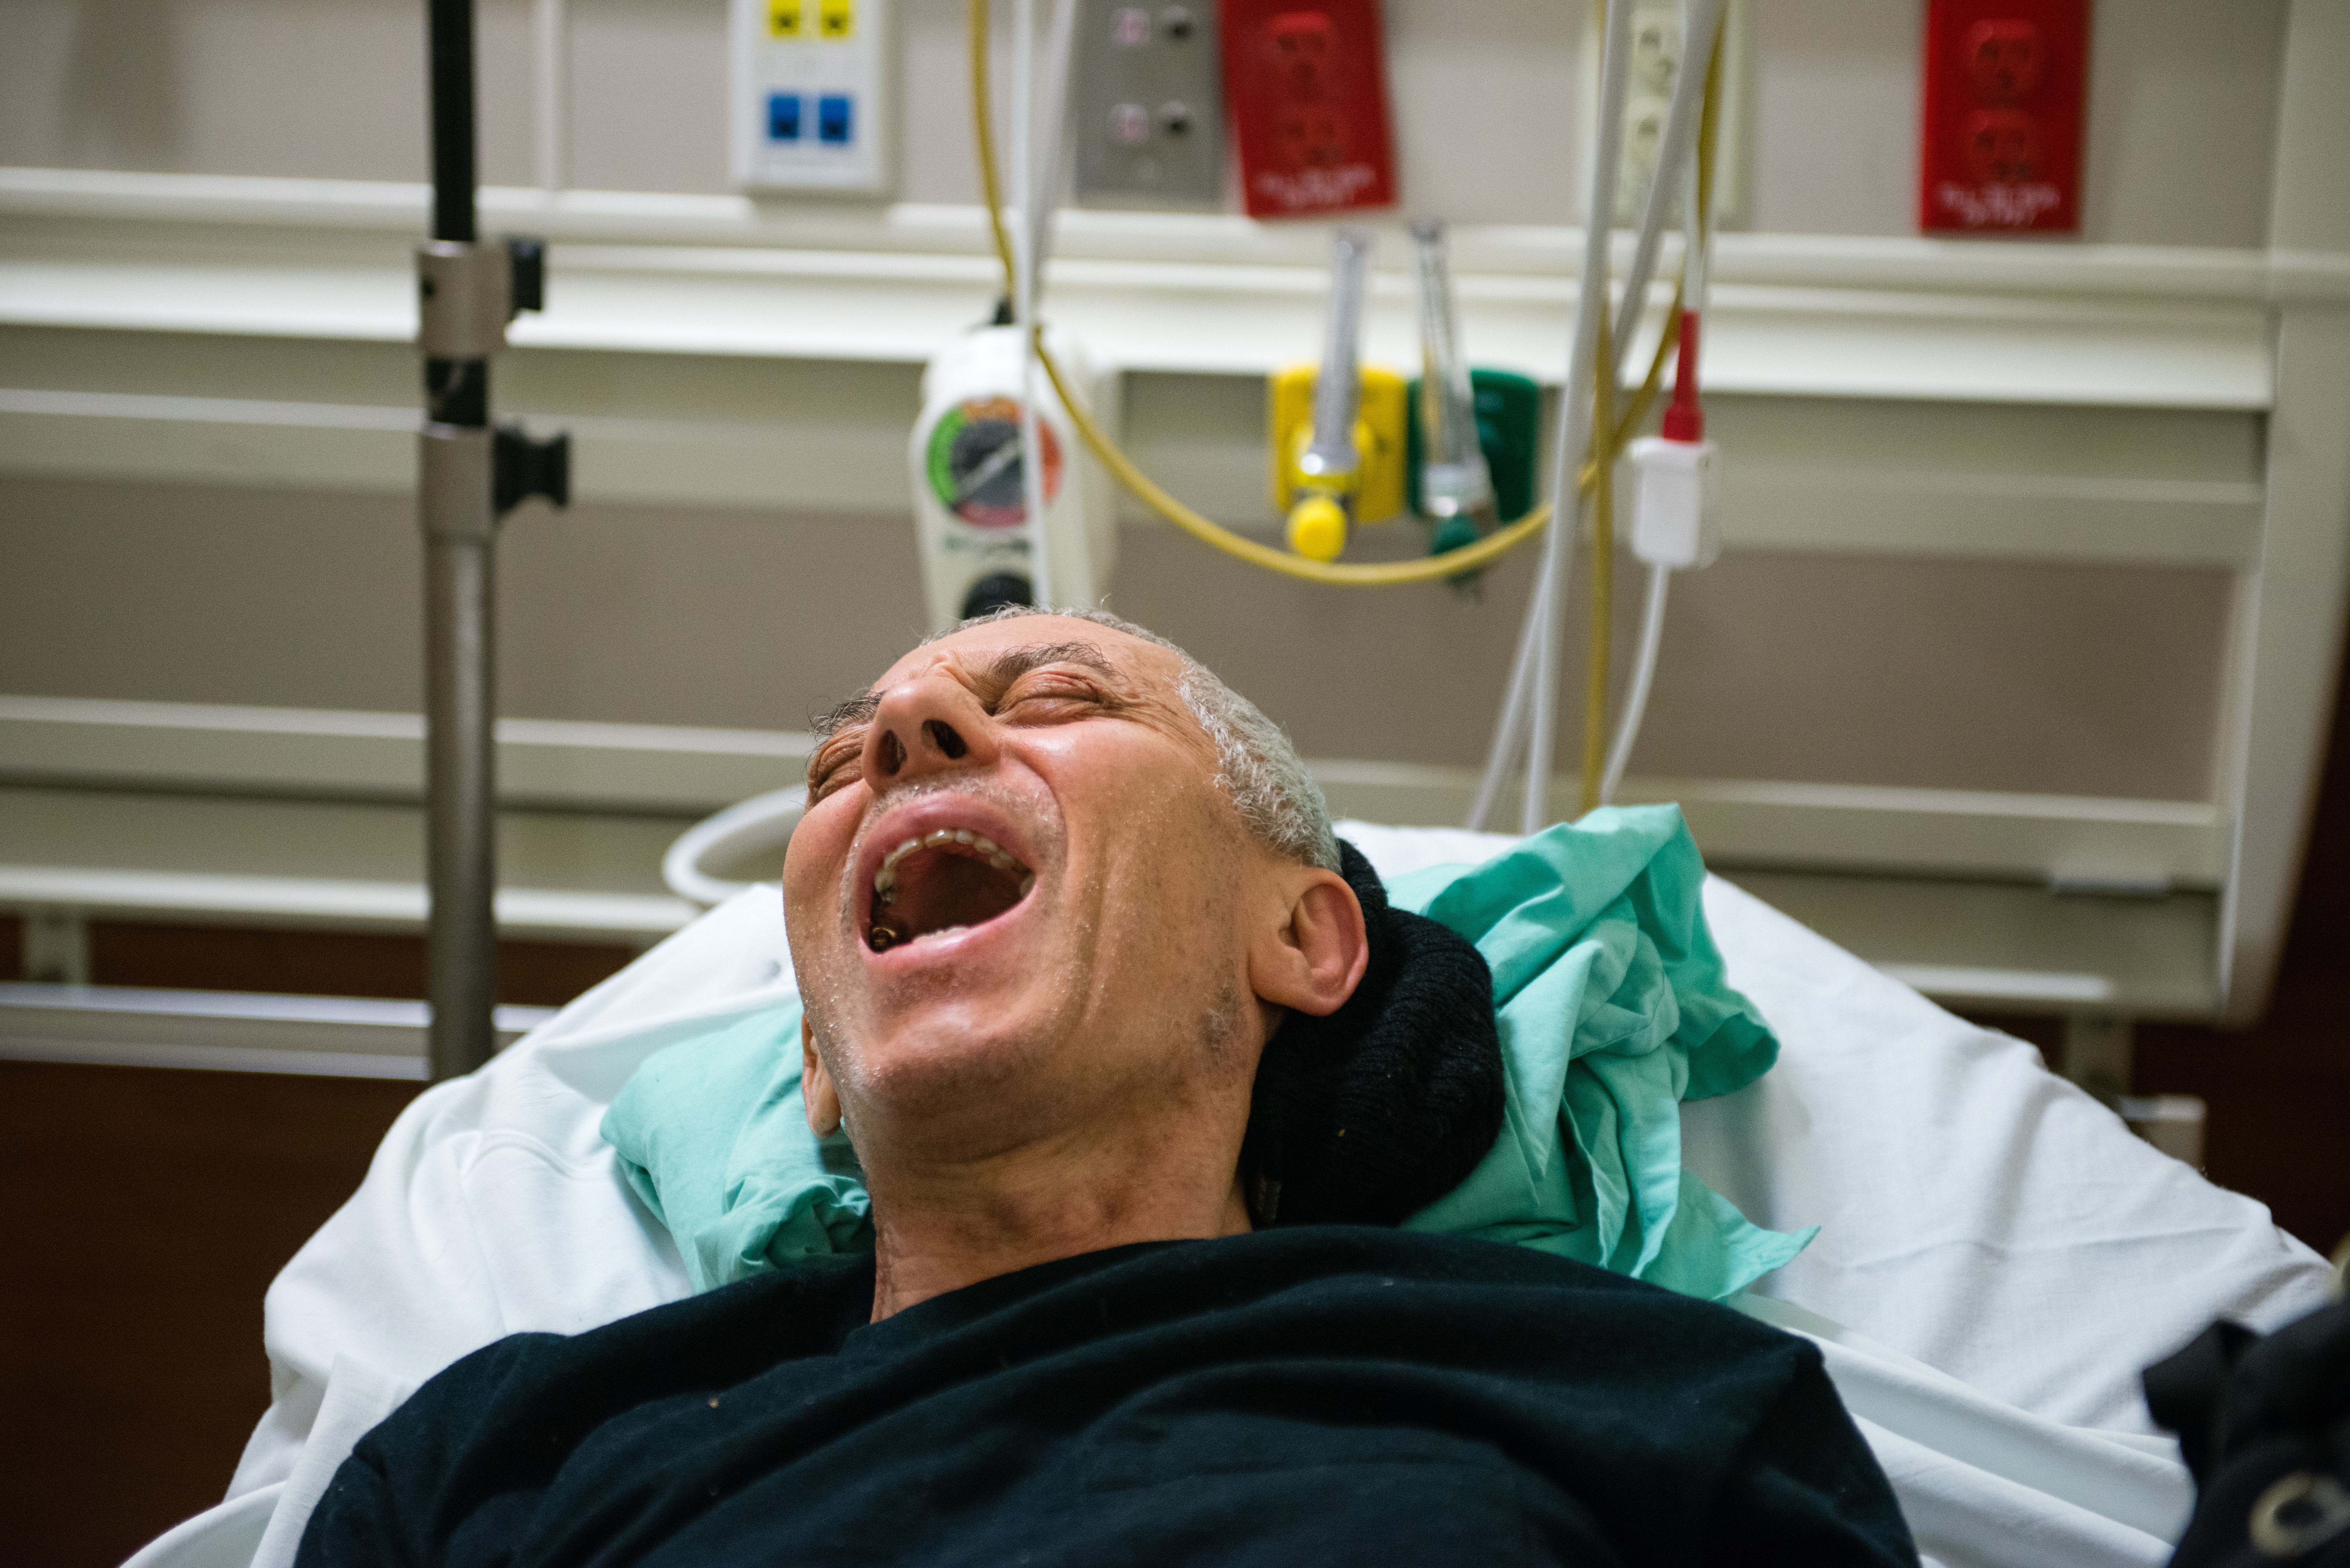 John Fornieri, 80, screams in pain as the doctor puts pressure on his hip. Fornieri, an artist with arthritis and a heart condition, was admitted to the hospital after he lost his balance and fell to the ground. (Heidi de Marco/CHL)